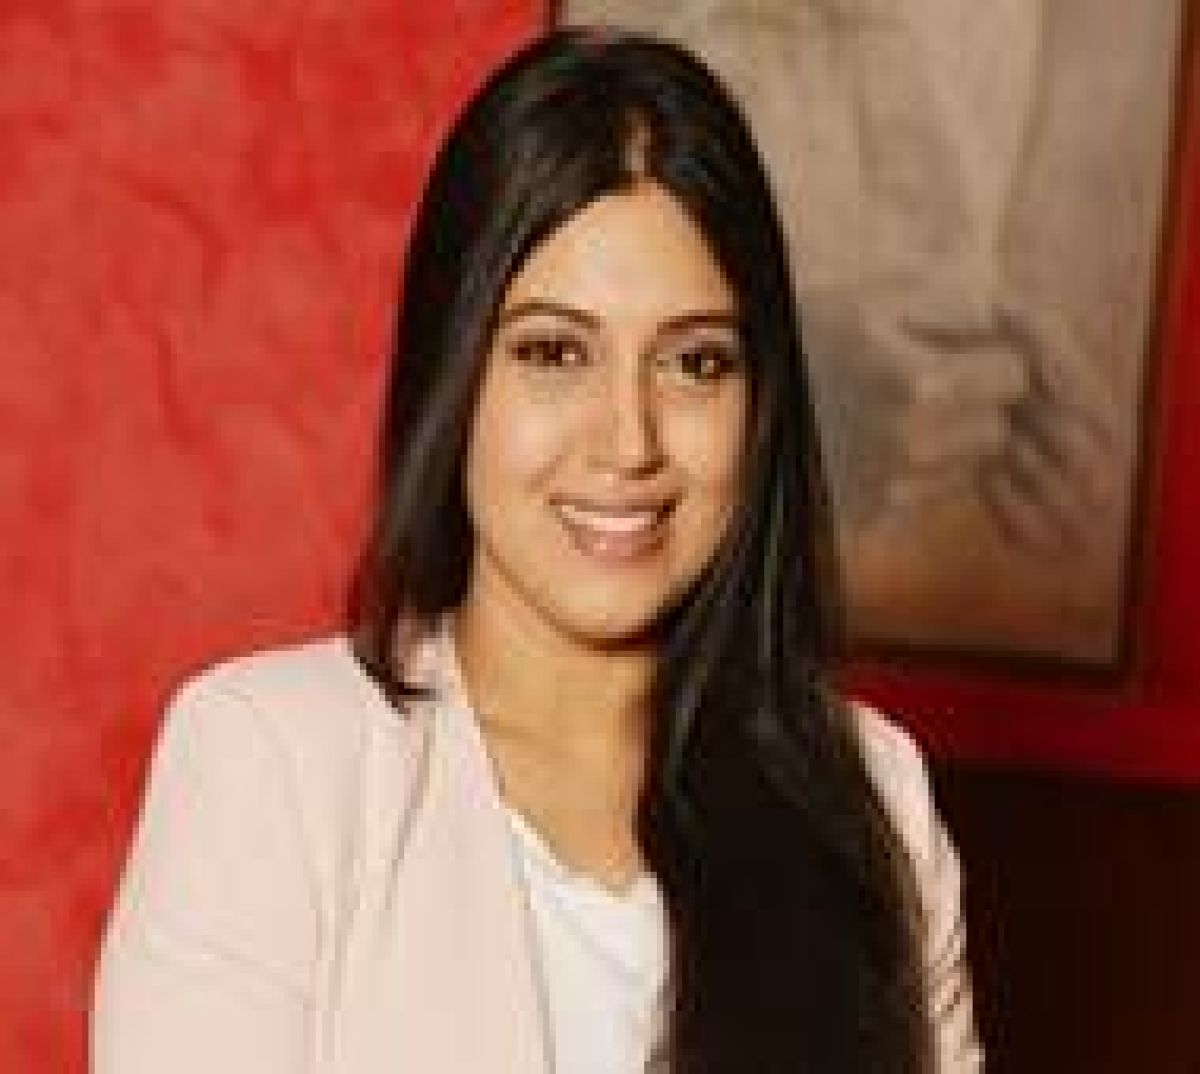 Hope people always talk about my work, not looks: Bhumi Pednekar